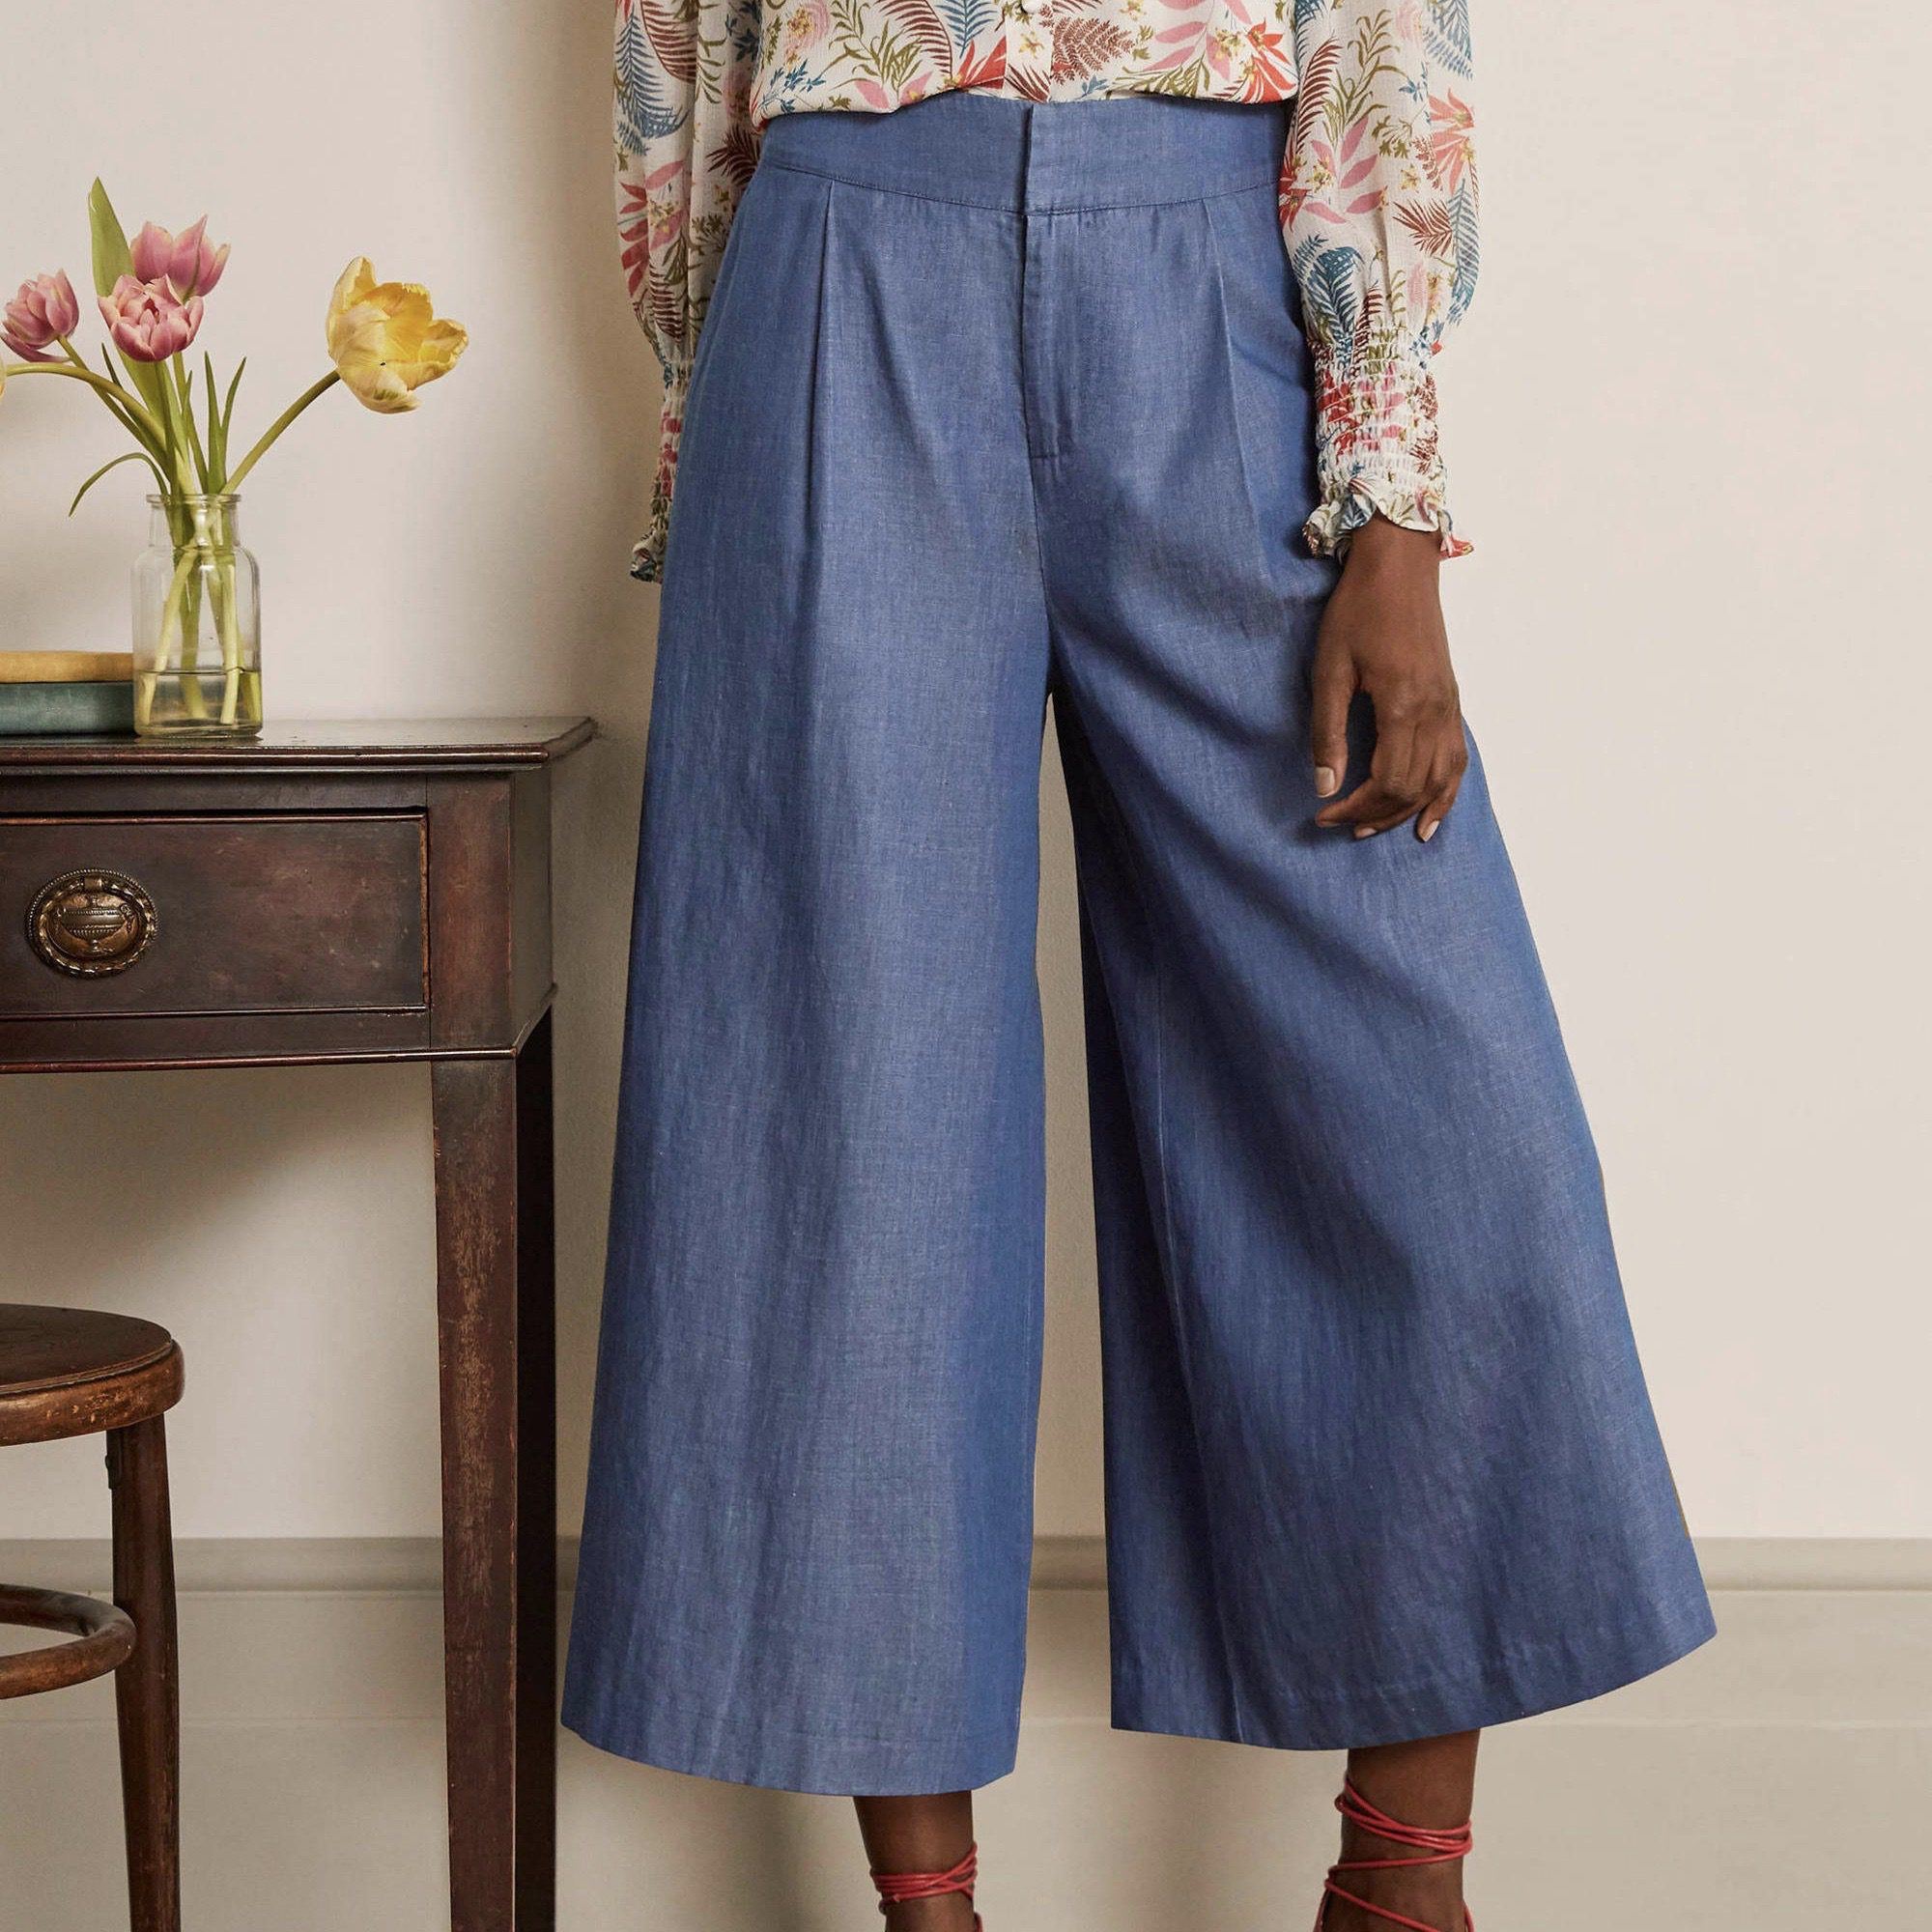 Eco Friendly Womens Clothing: 12 Ethically Sourced Pants